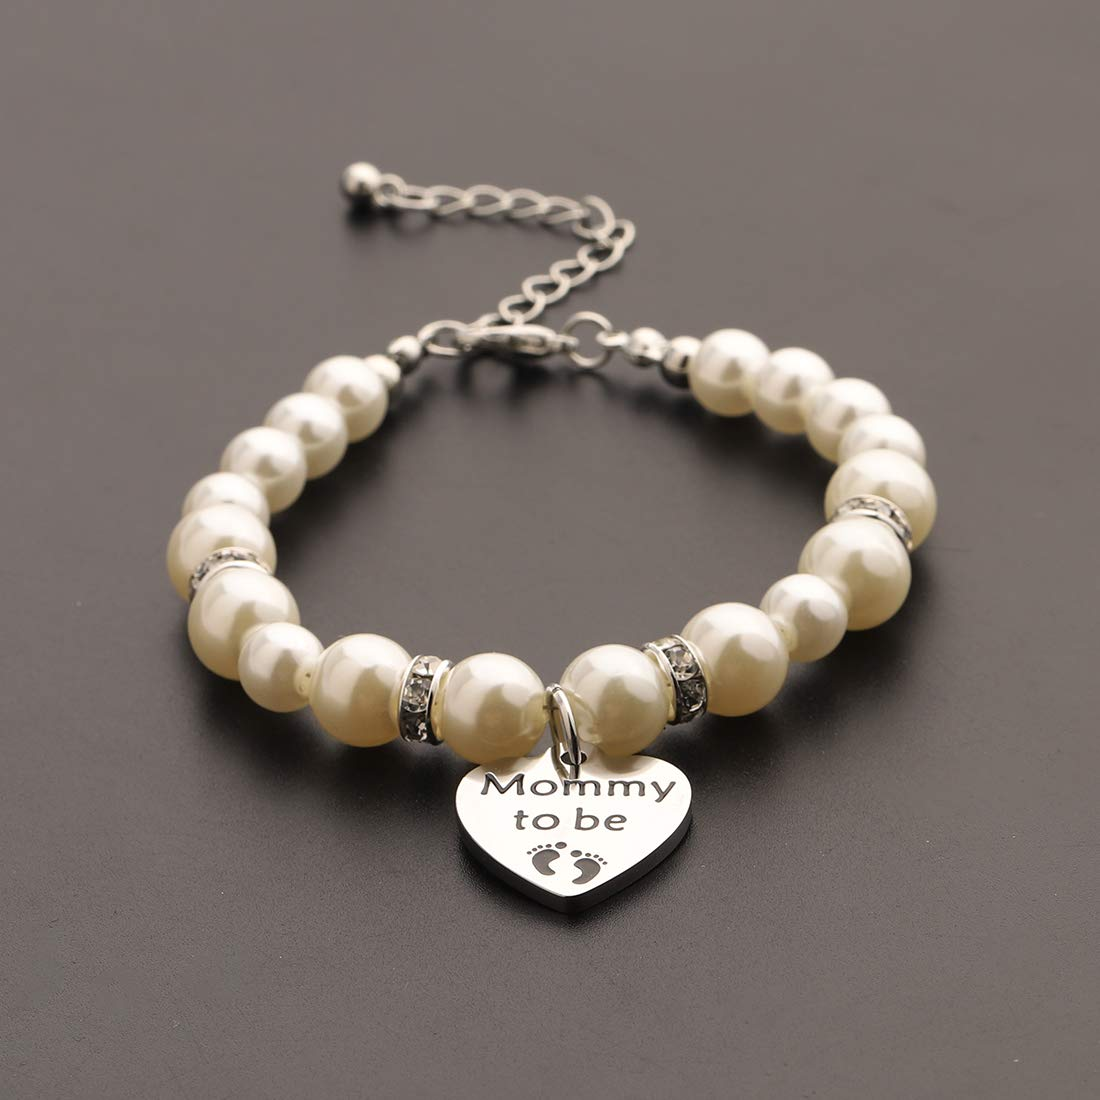 CHOROY Mommy to Be Bracelet Expectant Mother Bracelet New Mom Gift Pregnancy Announcement Gift for Mother-to-be